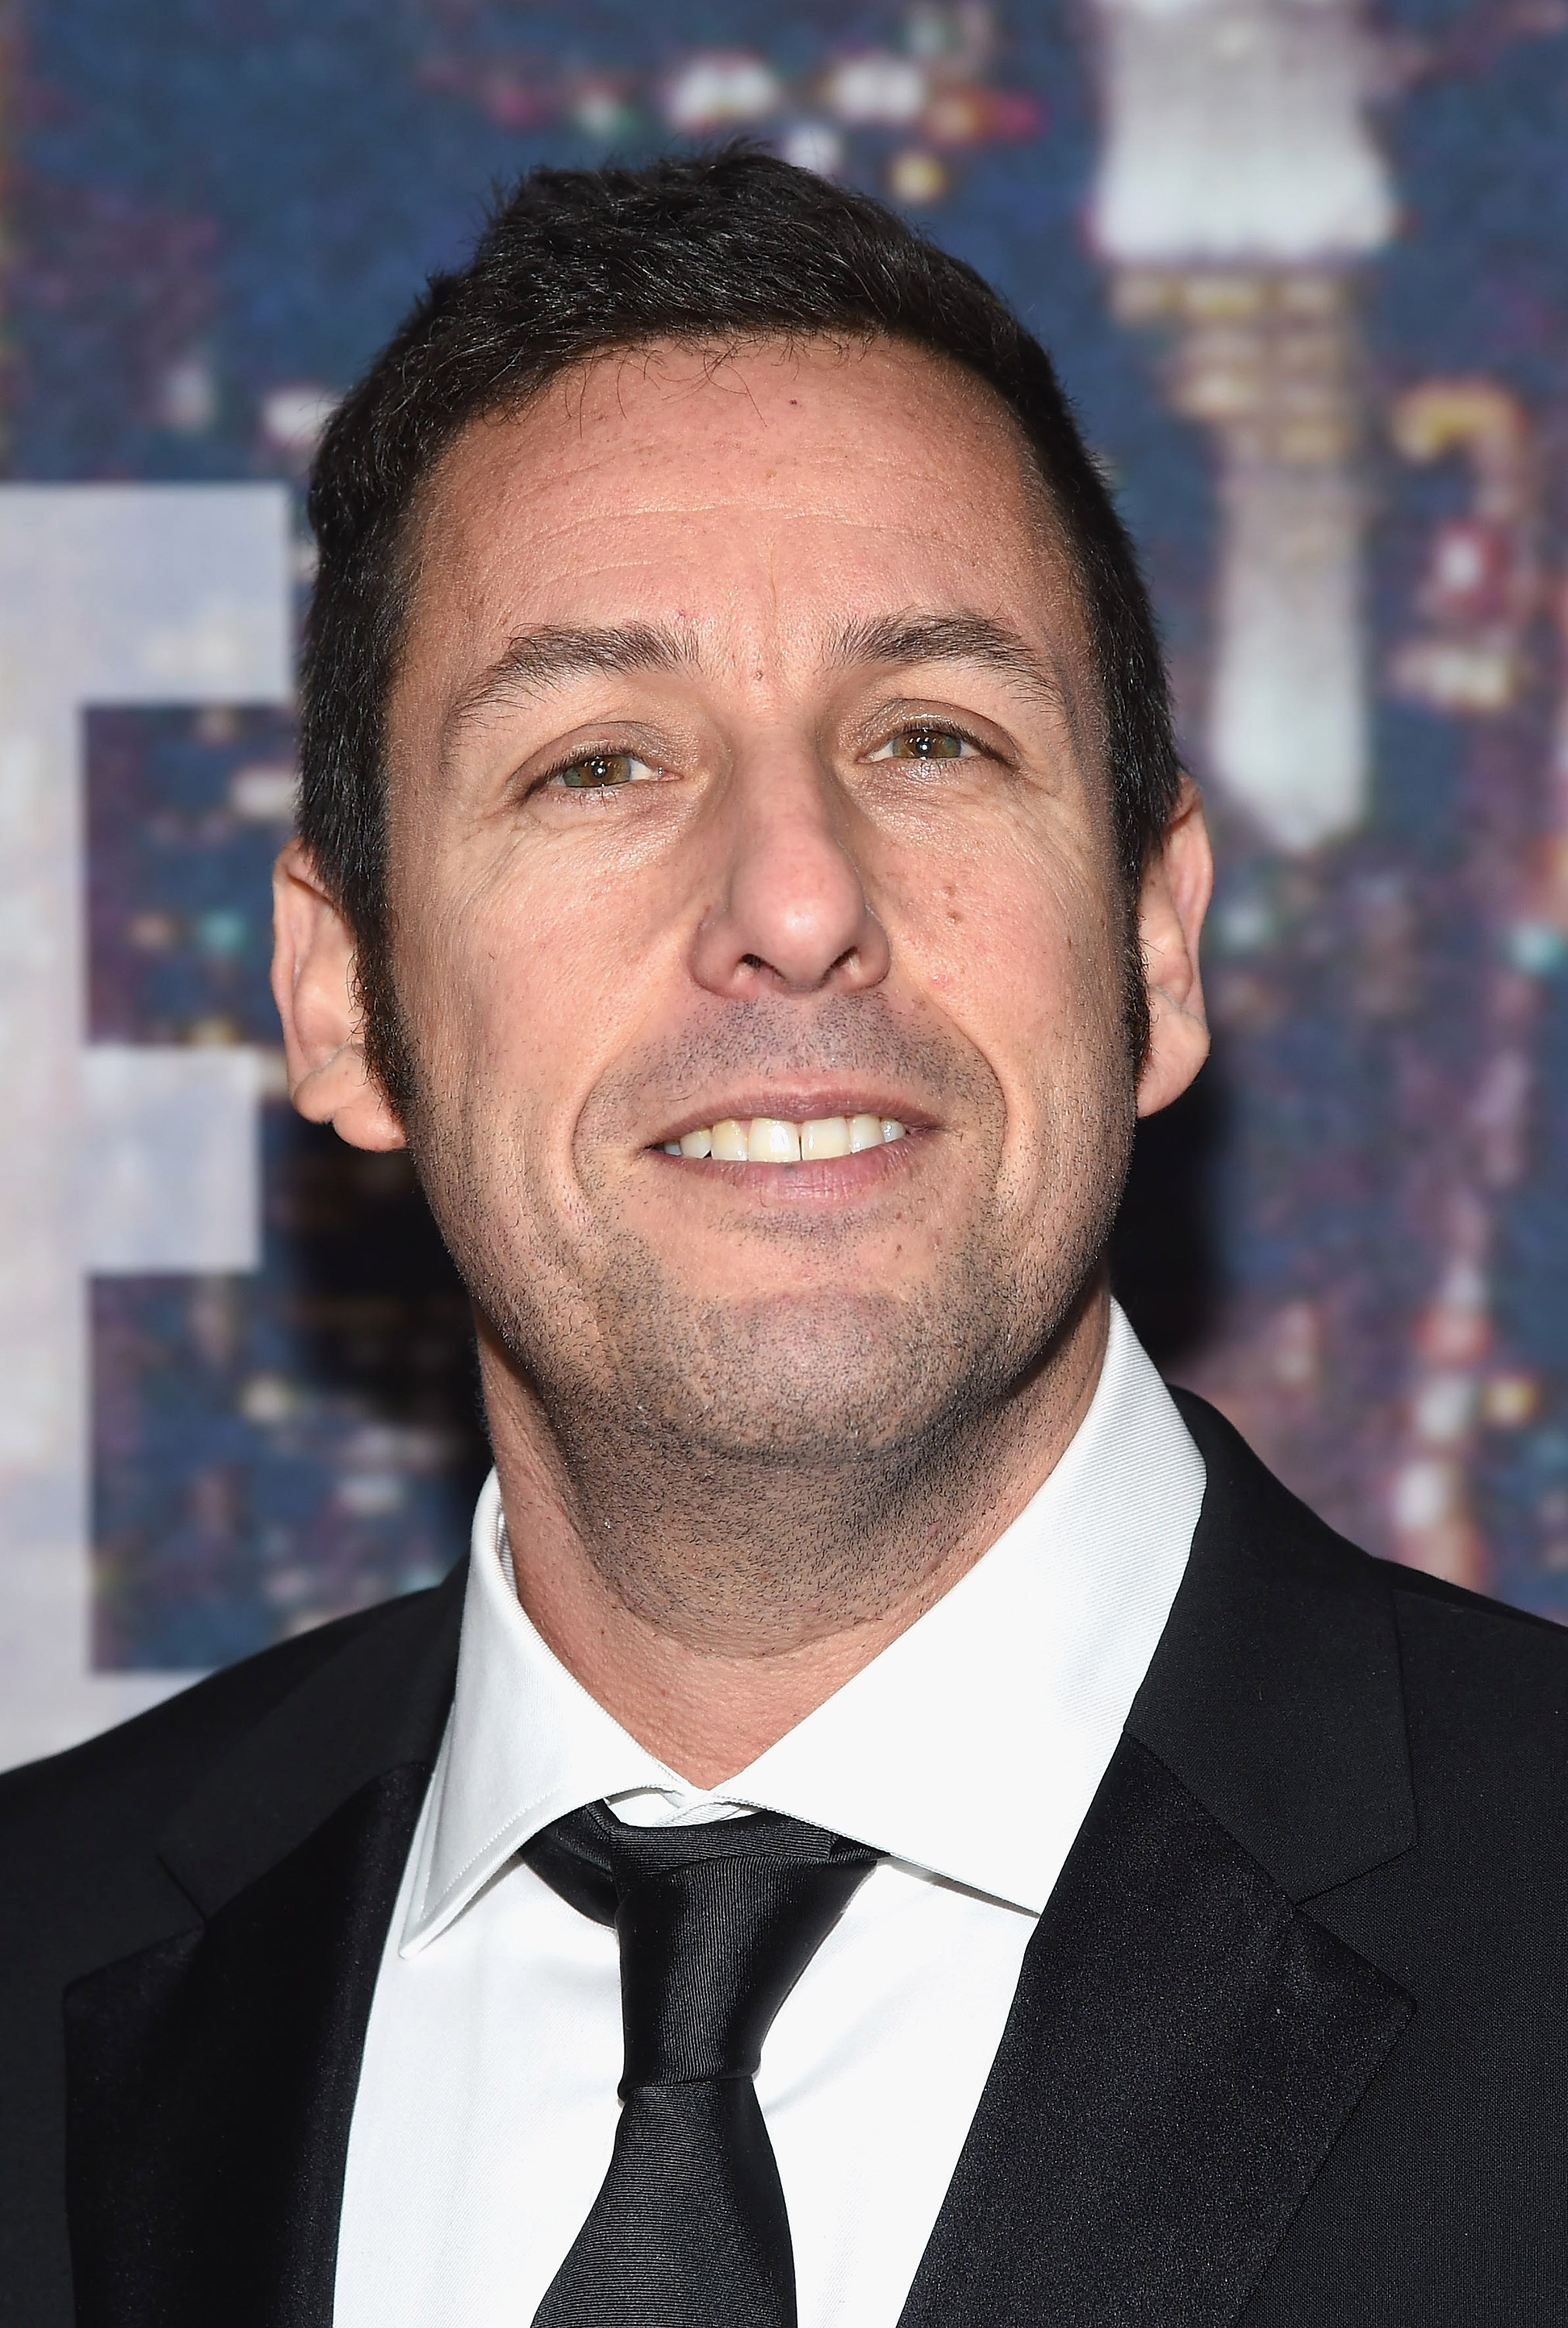 Adam Sandler attends the SNL 40th Anniversary Celebration at Rockefeller Plaza on February 15, 2015 in New York City.